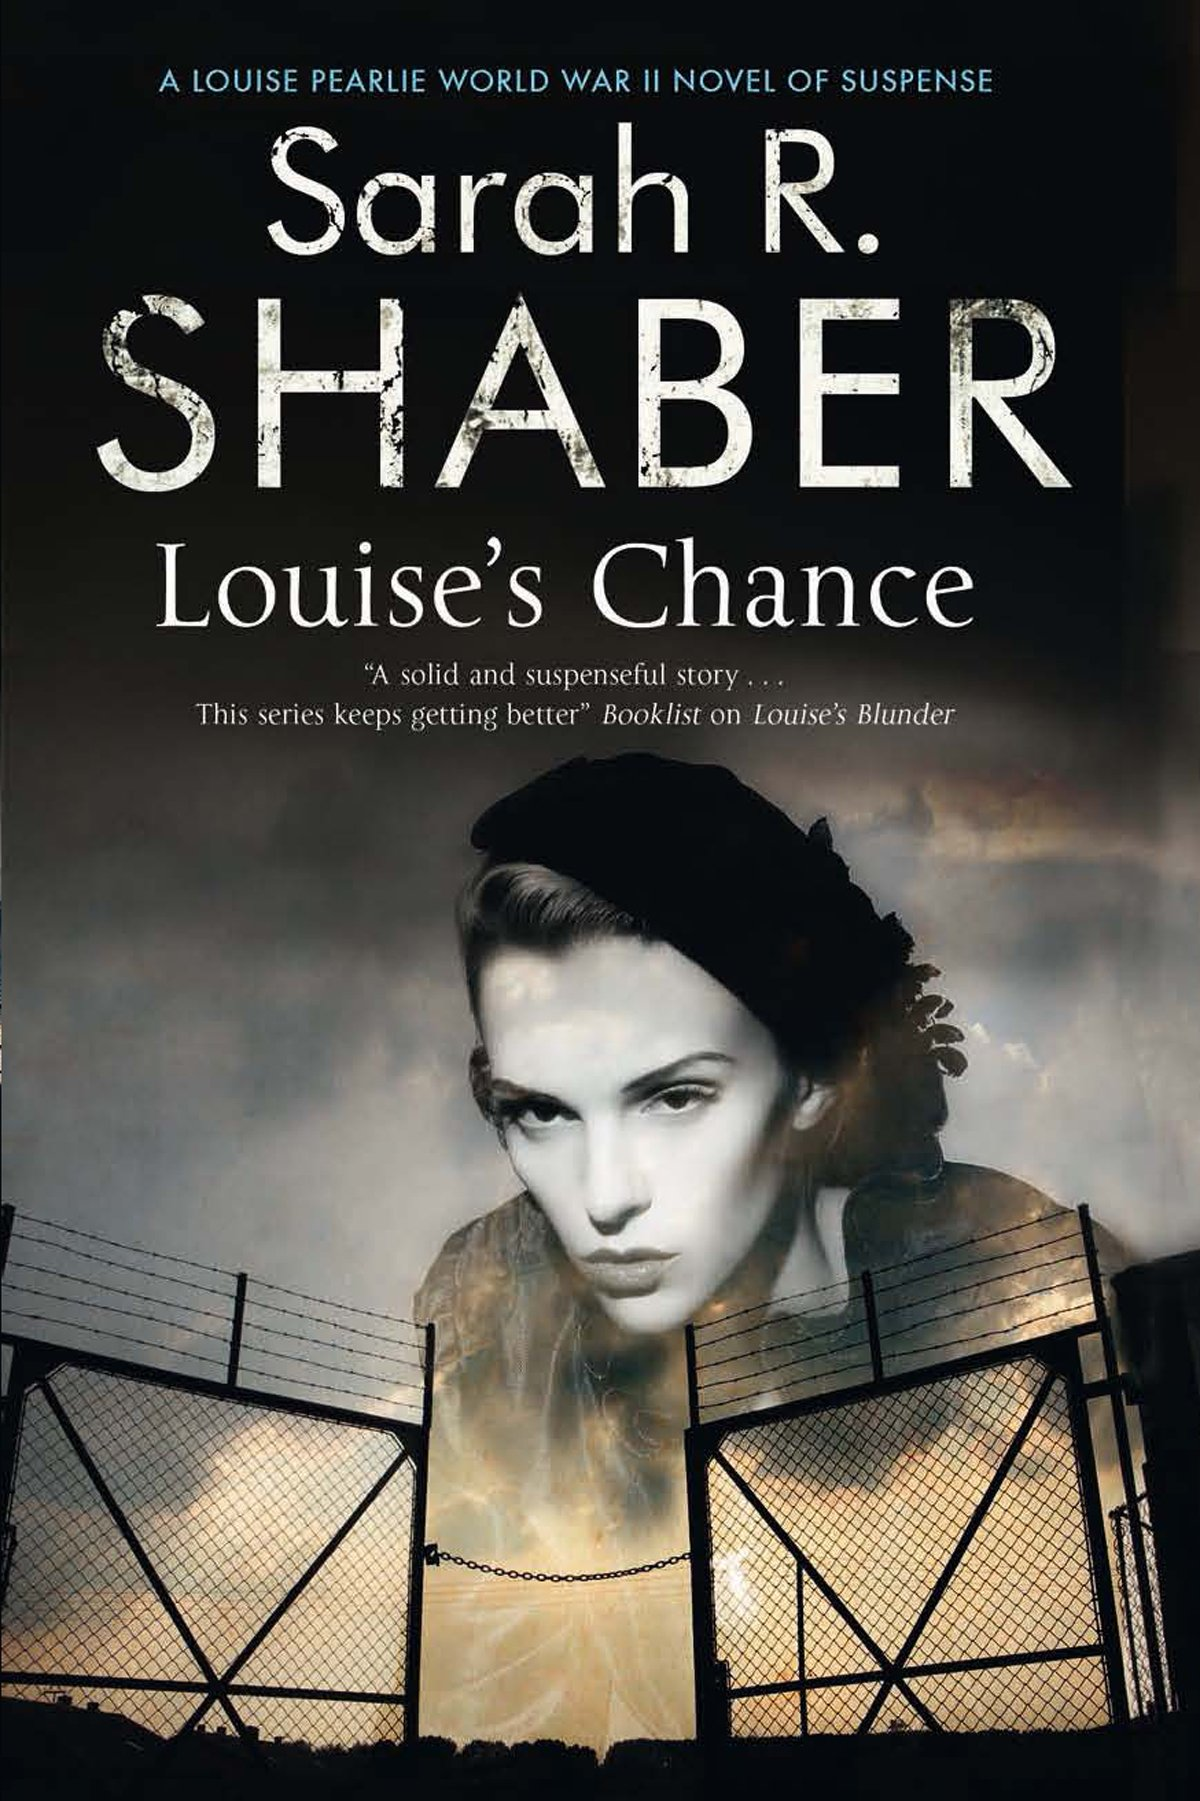 Download Louise's Chance: A 1940s spy thriller set in wartime Washington (A Louise Pearlie Mystery) PDF